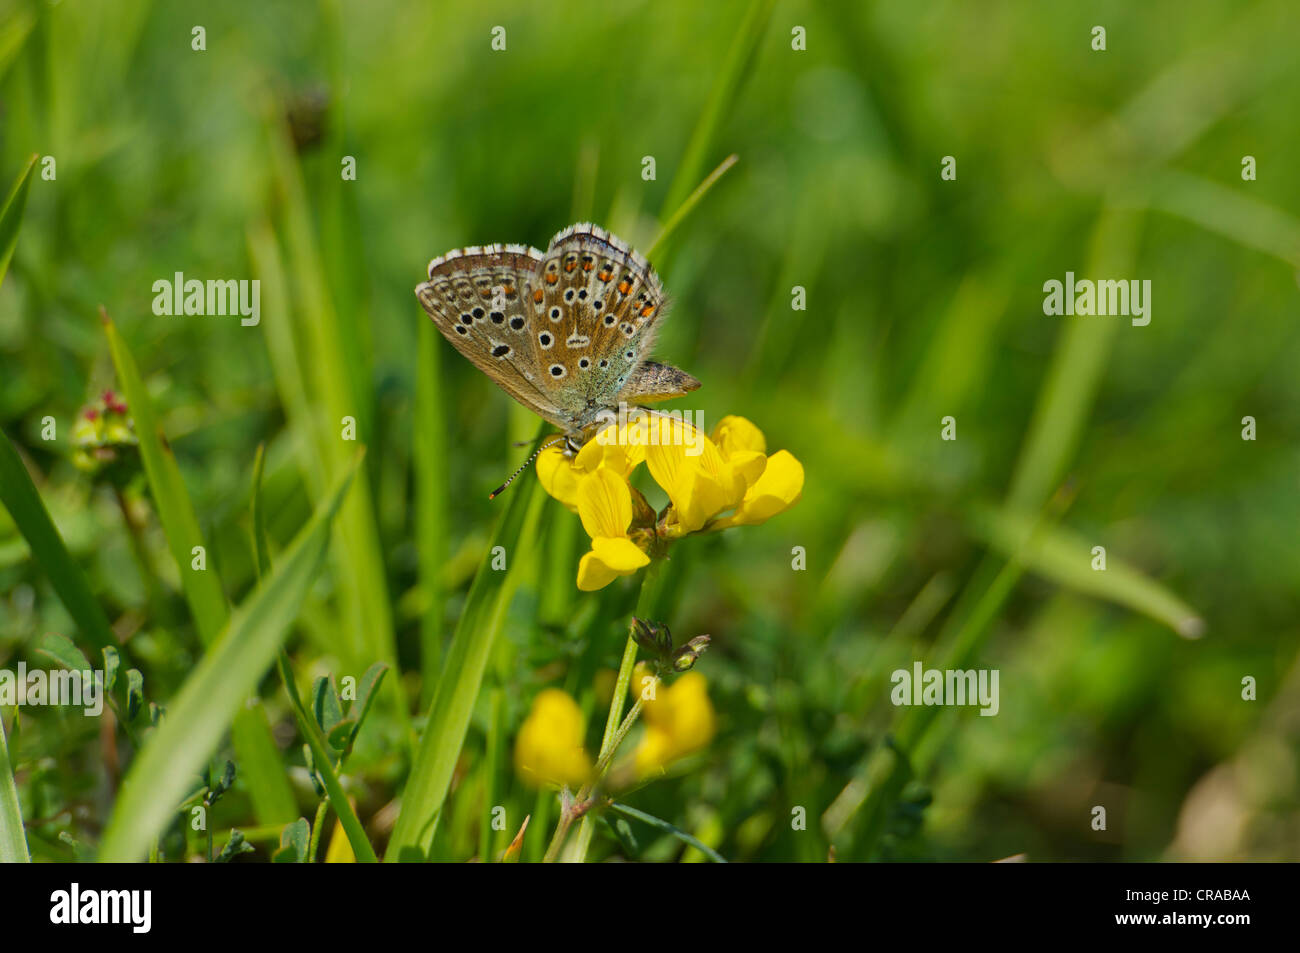 British Adonis Blue female butterfly feeding on Horseshoe Vetch in typical chalkland grassland environment - Stock Image